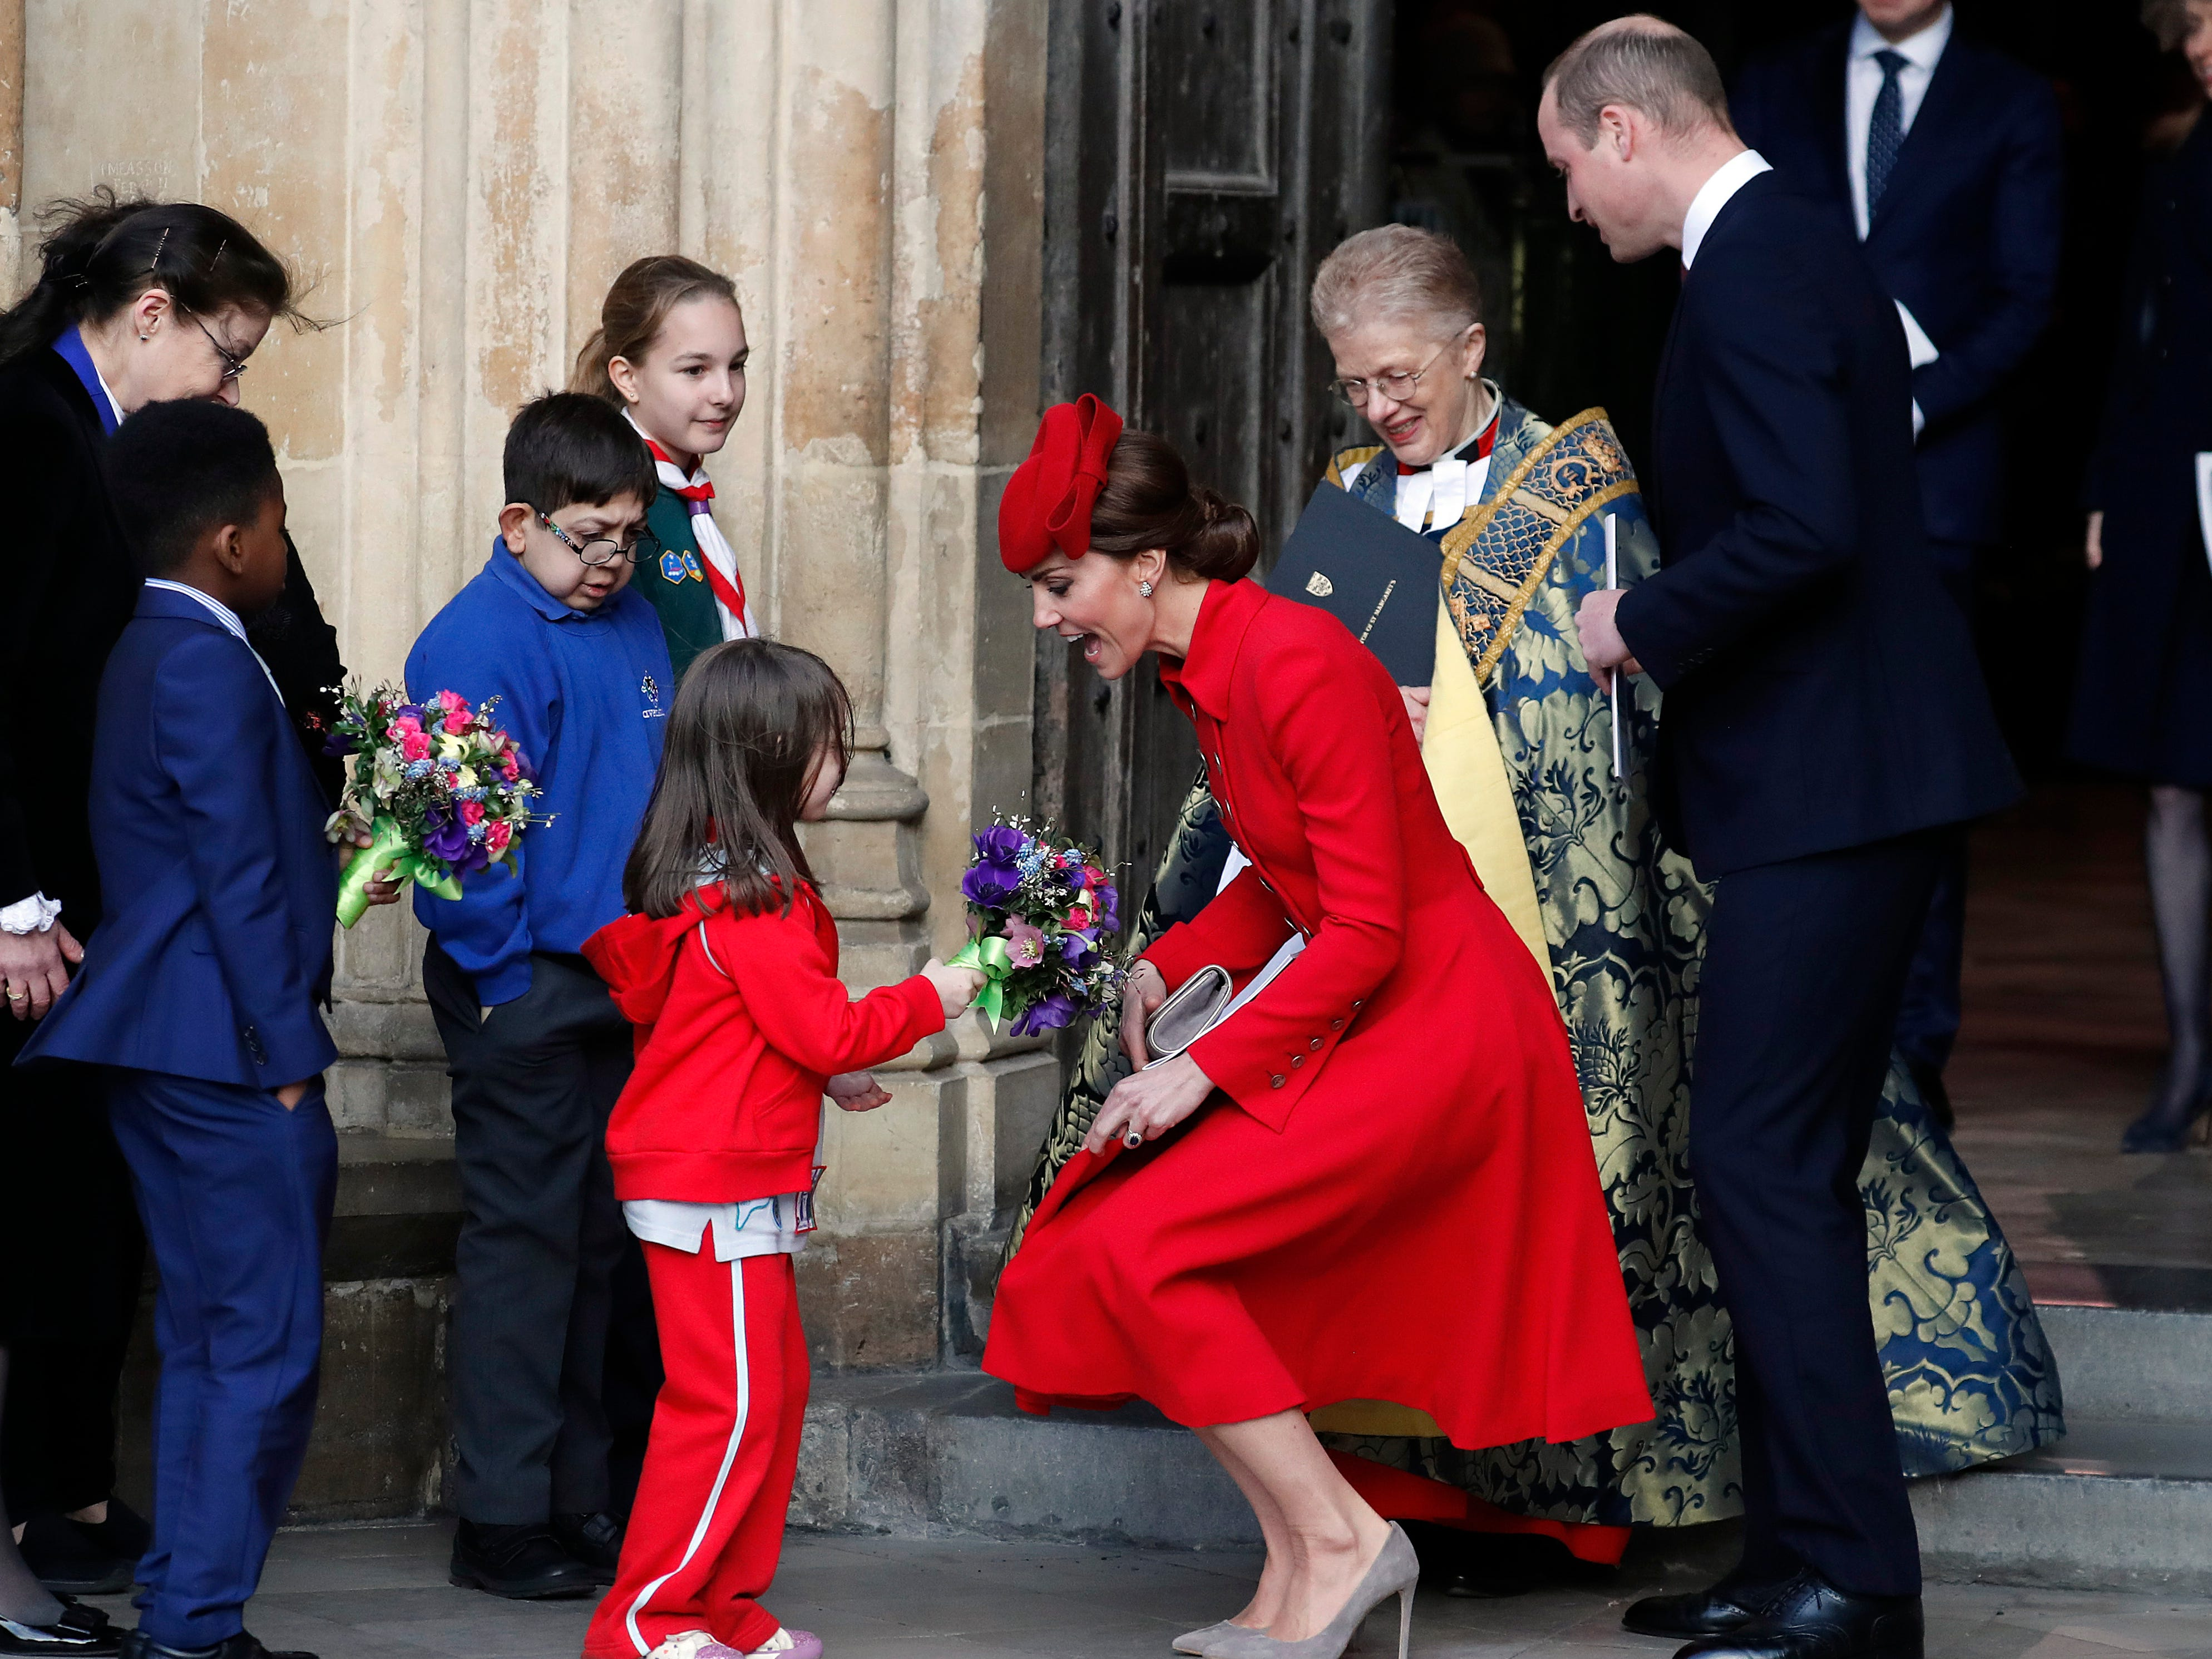 Duchess Kate grins as she kneels down to accept a bouquet of flowers from a young girl after attending a Commonwealth Day service at London's Westminster Abbey on March 11, 2019.